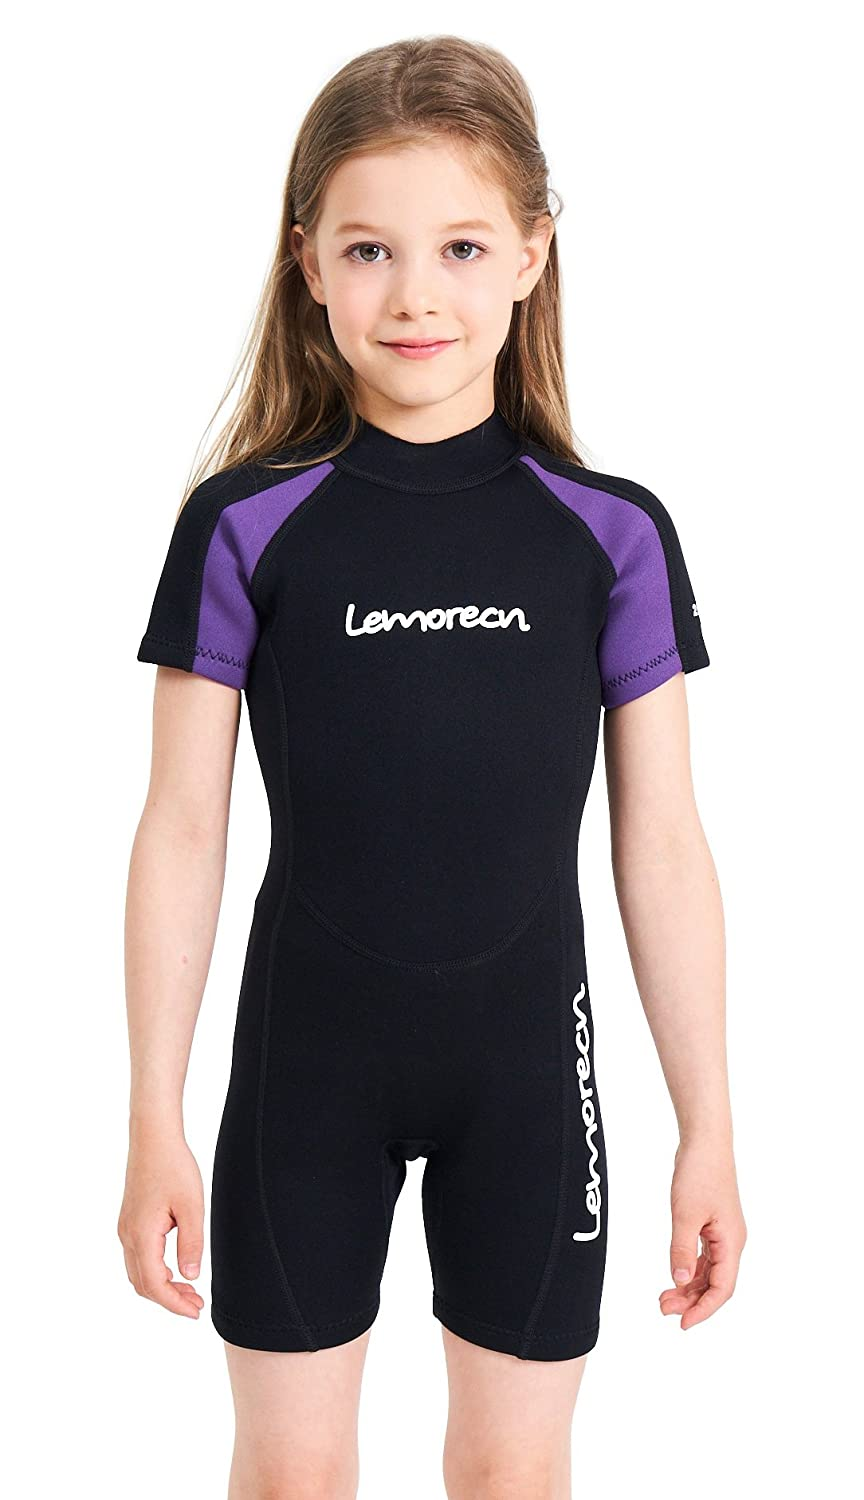 58e2ffd829 Amazon.com  Lemorecn Kids Wetsuits Youth Premium Neoprene 2mm Youth s  Shorty Swim Suits  Sports   Outdoors